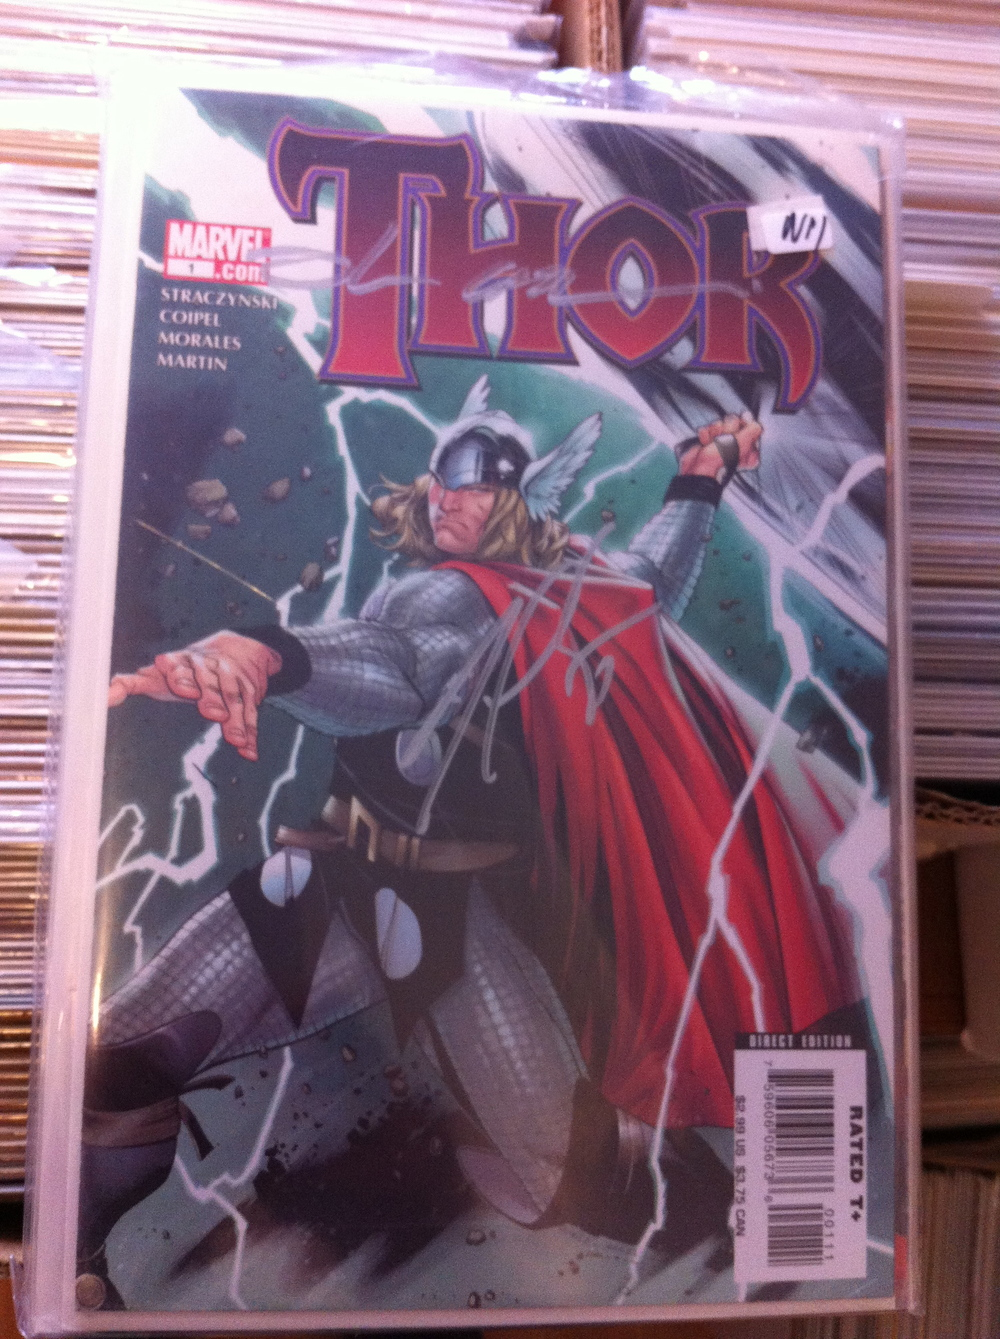 THE MIGHTY THOR #1-12 600-603 + Finale #1 The Complete J Michael Straczynski run on THor! with signatures from Olivier Coipel, J Michael Staczynski and Marko Djurdjevic!